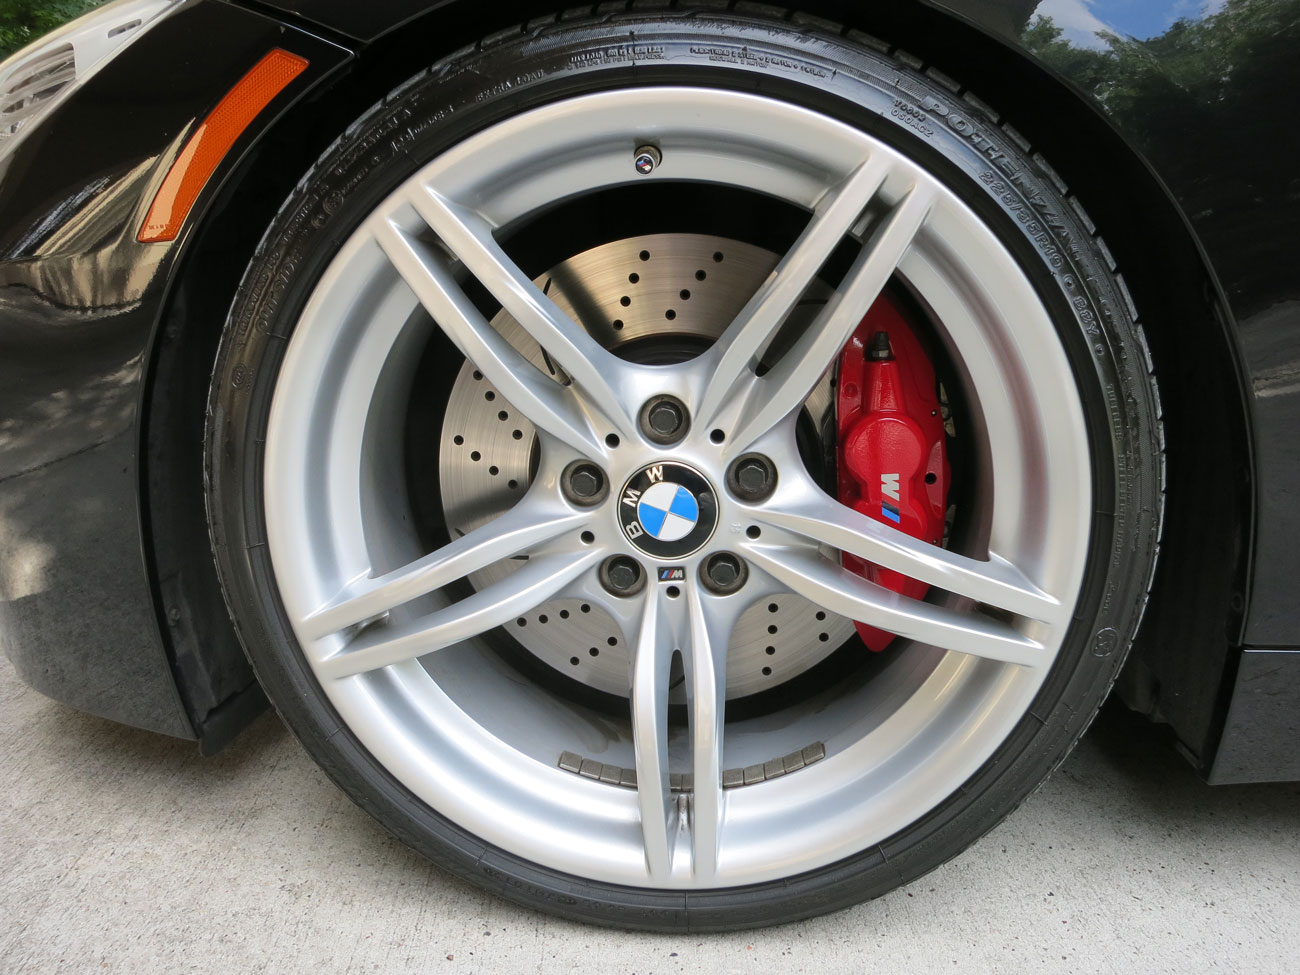 2011 Z4 With M Performance Front Brake Kit And Cquence Rotors